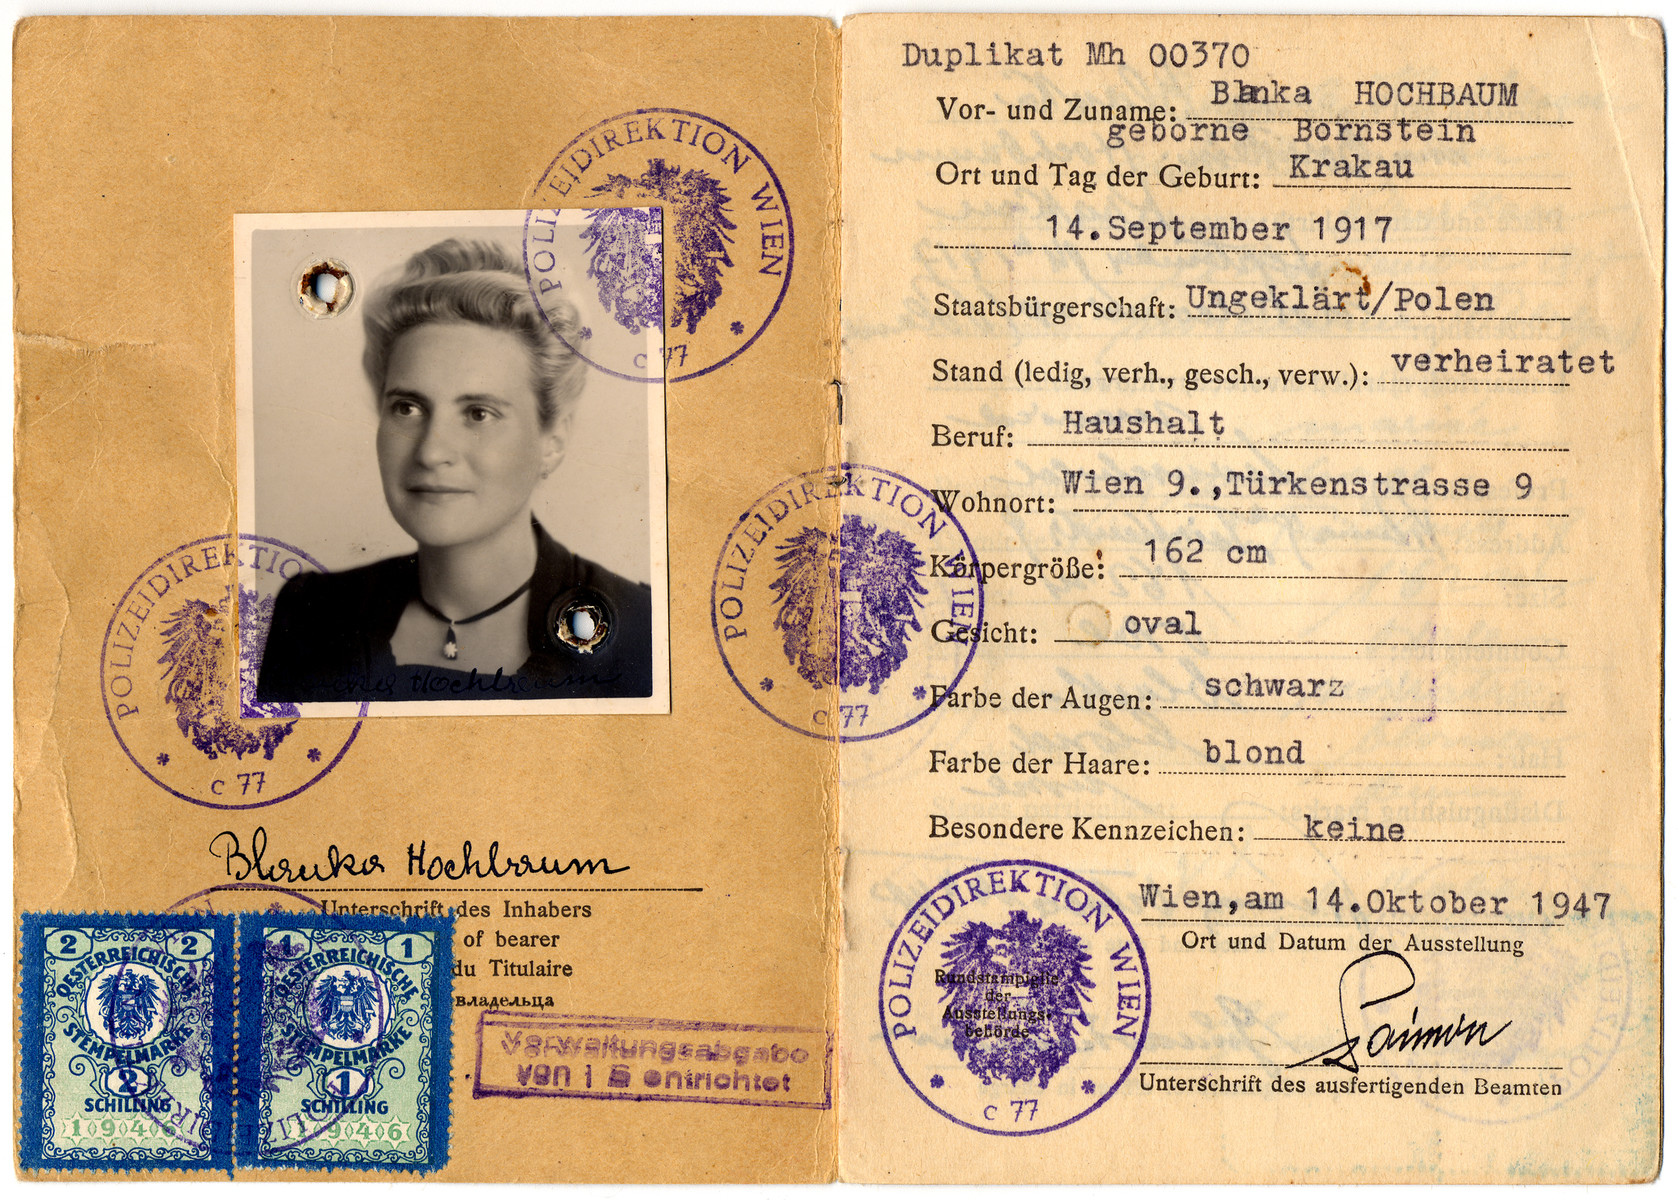 Passport issued to Blanka Hochbaum allowing her to return to Poland to search for her family.